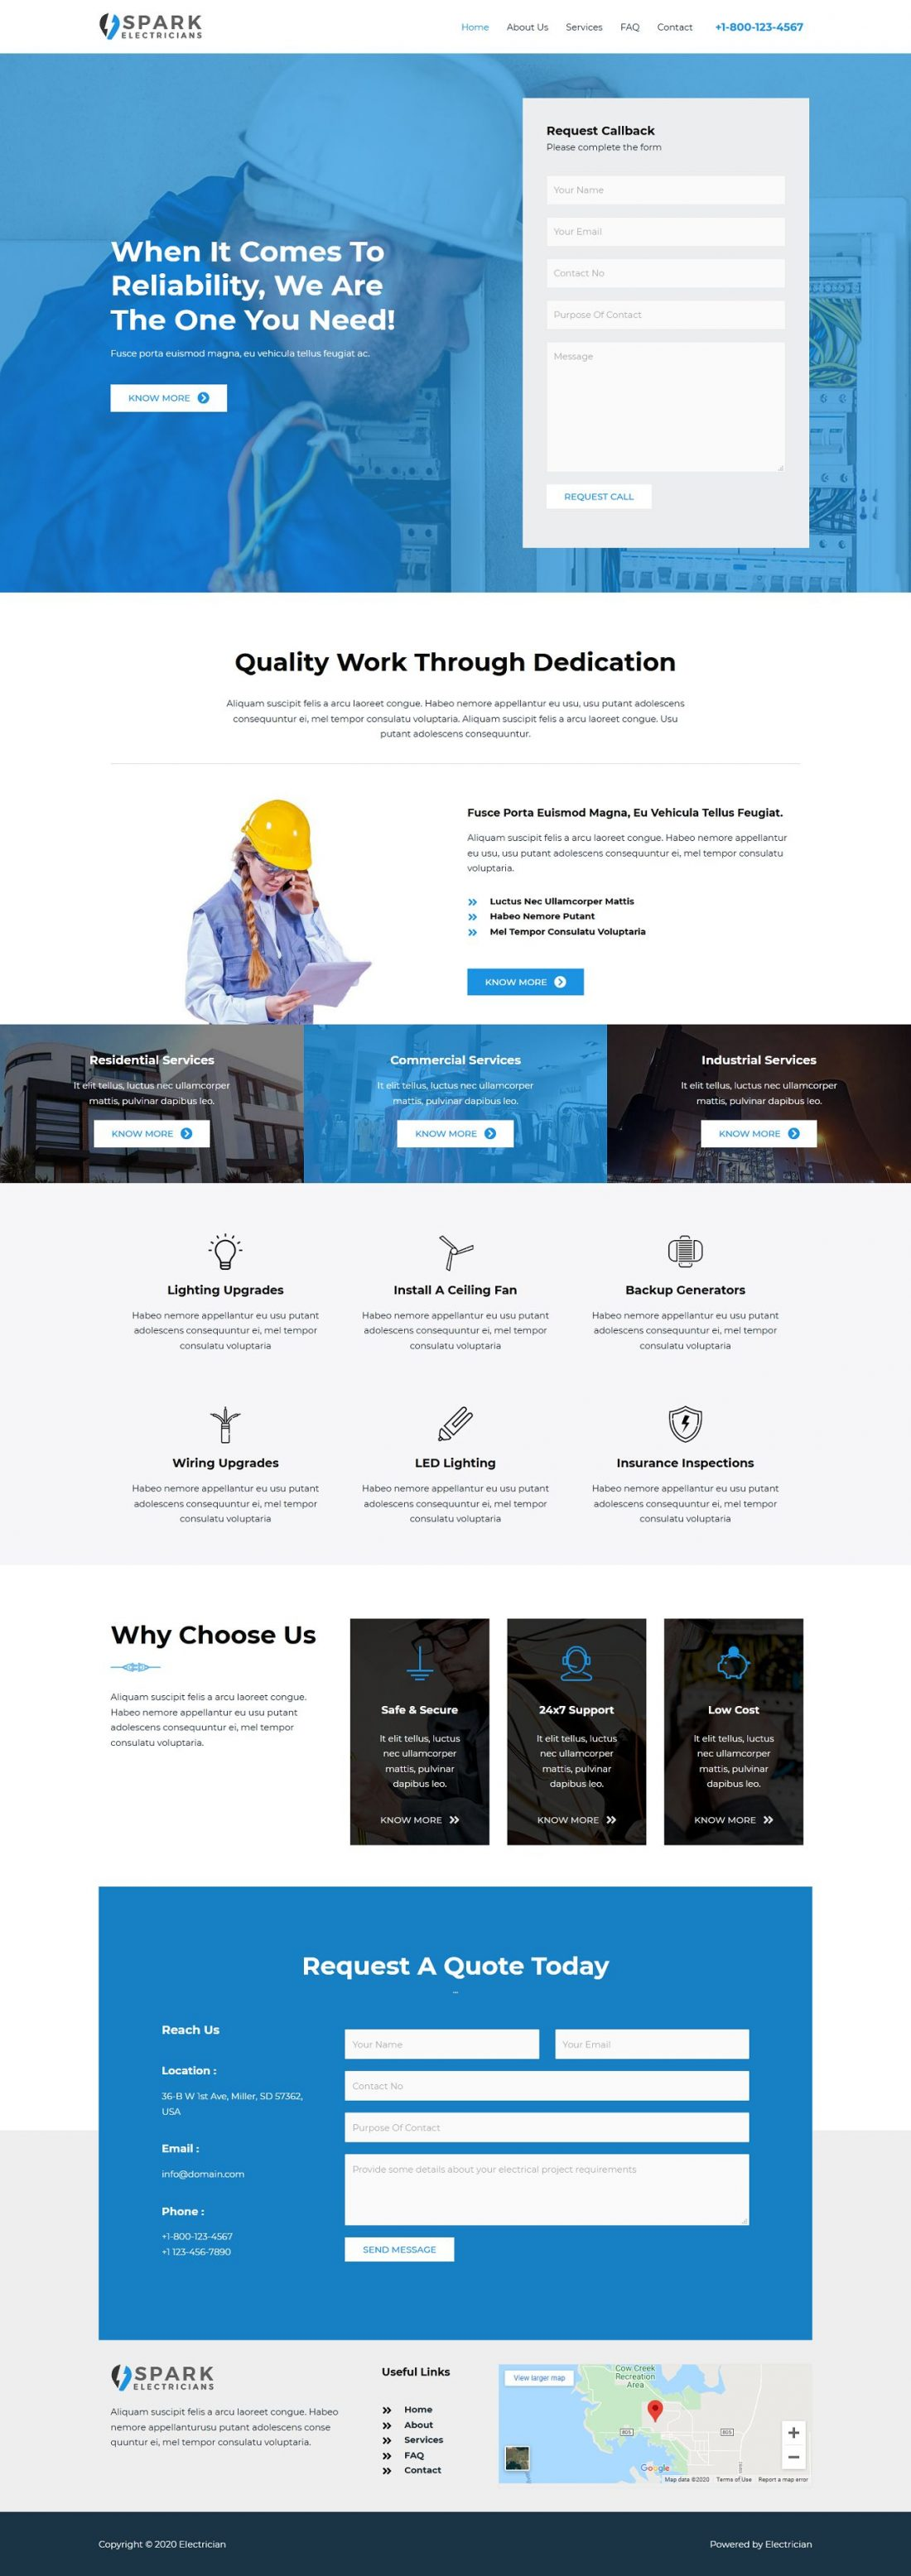 Fagowi.com Website Design Templates For Electrician - Home Page Image